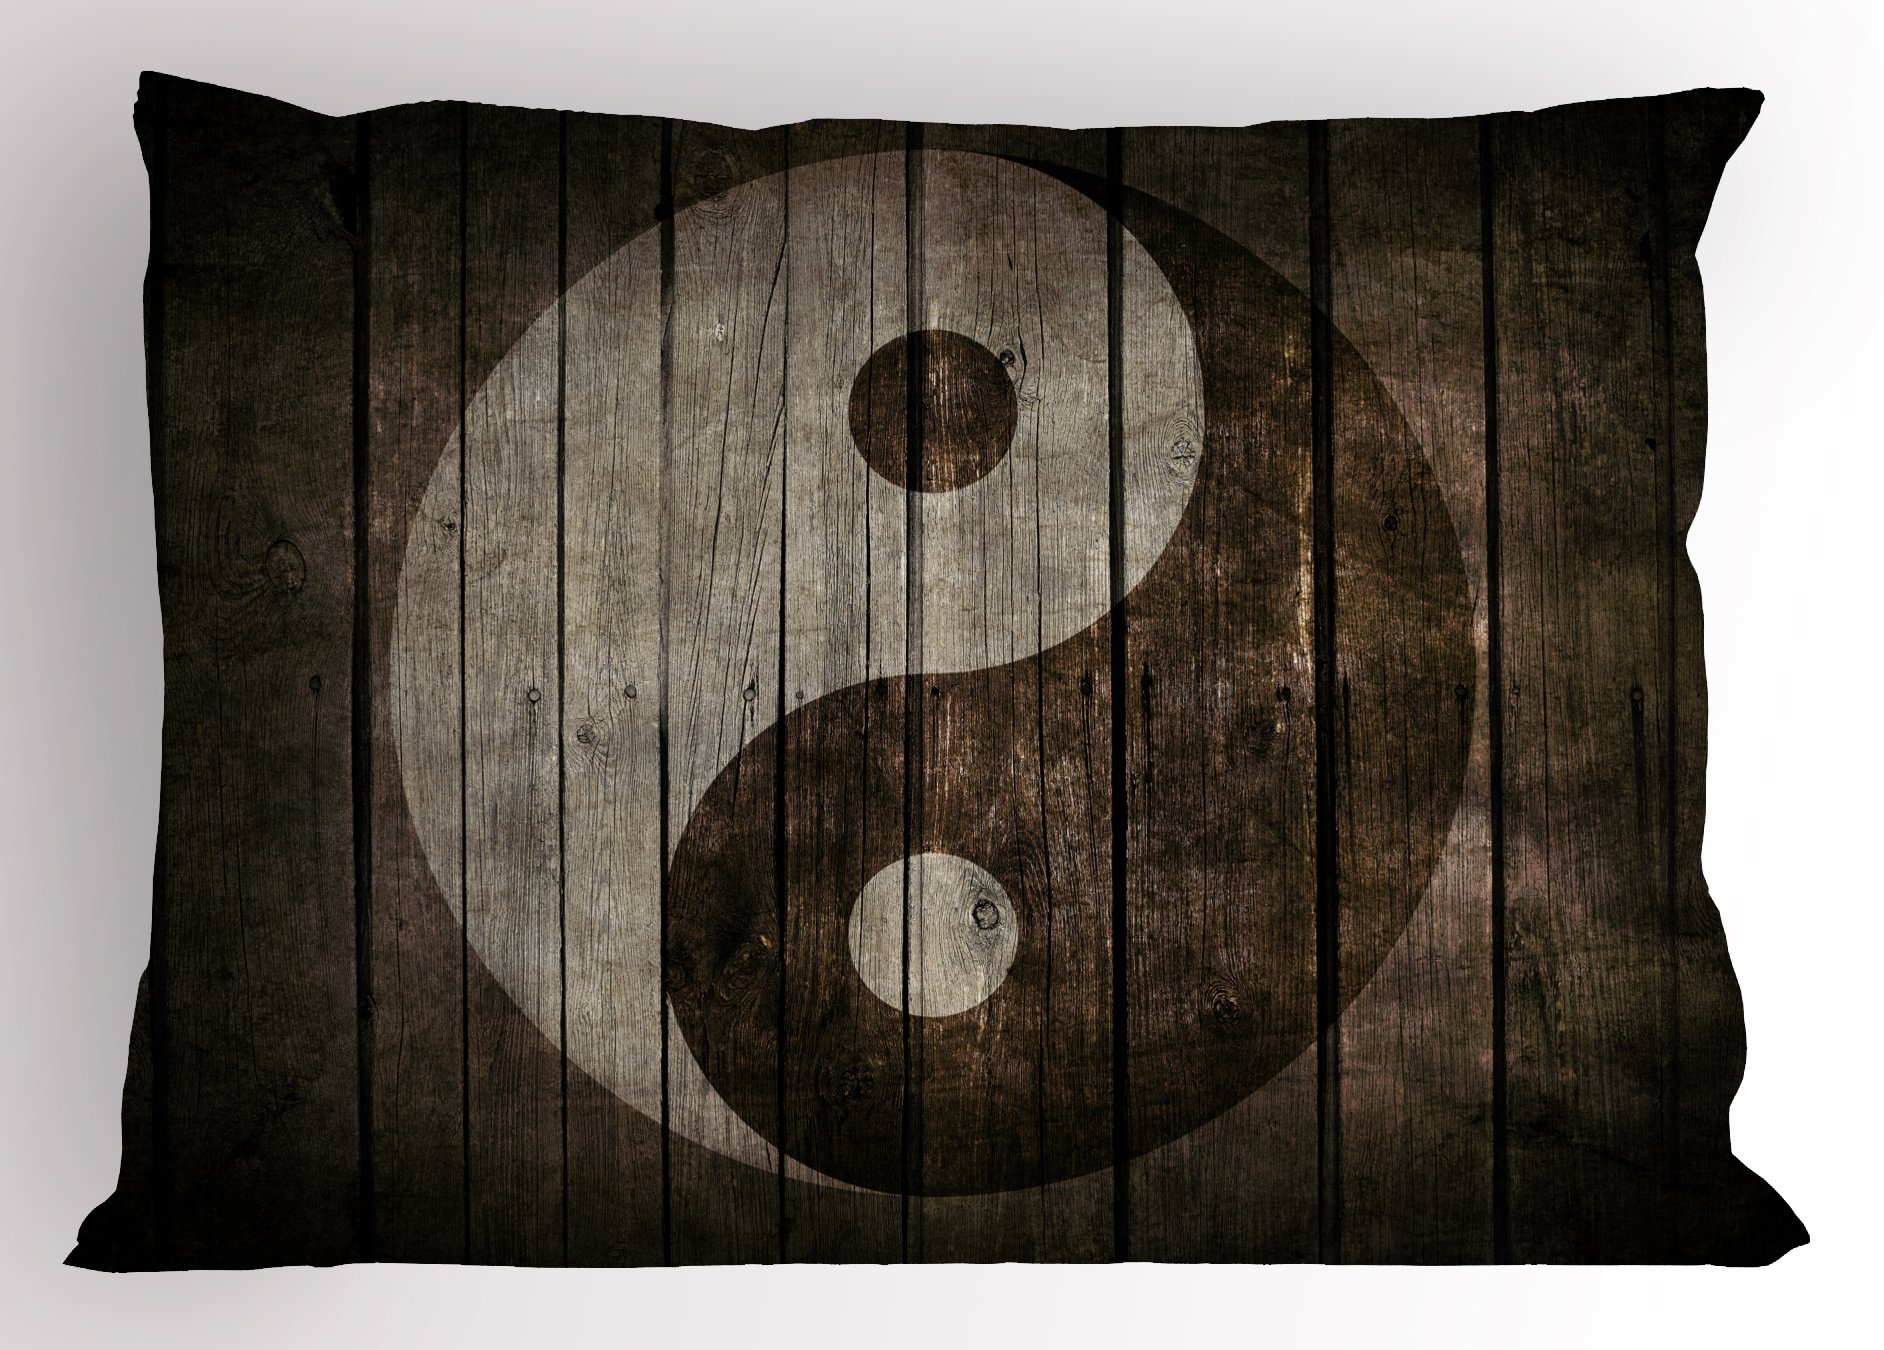 Lunarable Ying Yang Pillow Sham, Rustic Wood with Ying Yang Sign Art Grunge Design Zen Peace Balance Yoga Nature, Decorative Standard King Size Printed Pillowcase, 36 X 20 inches, Beige Brown